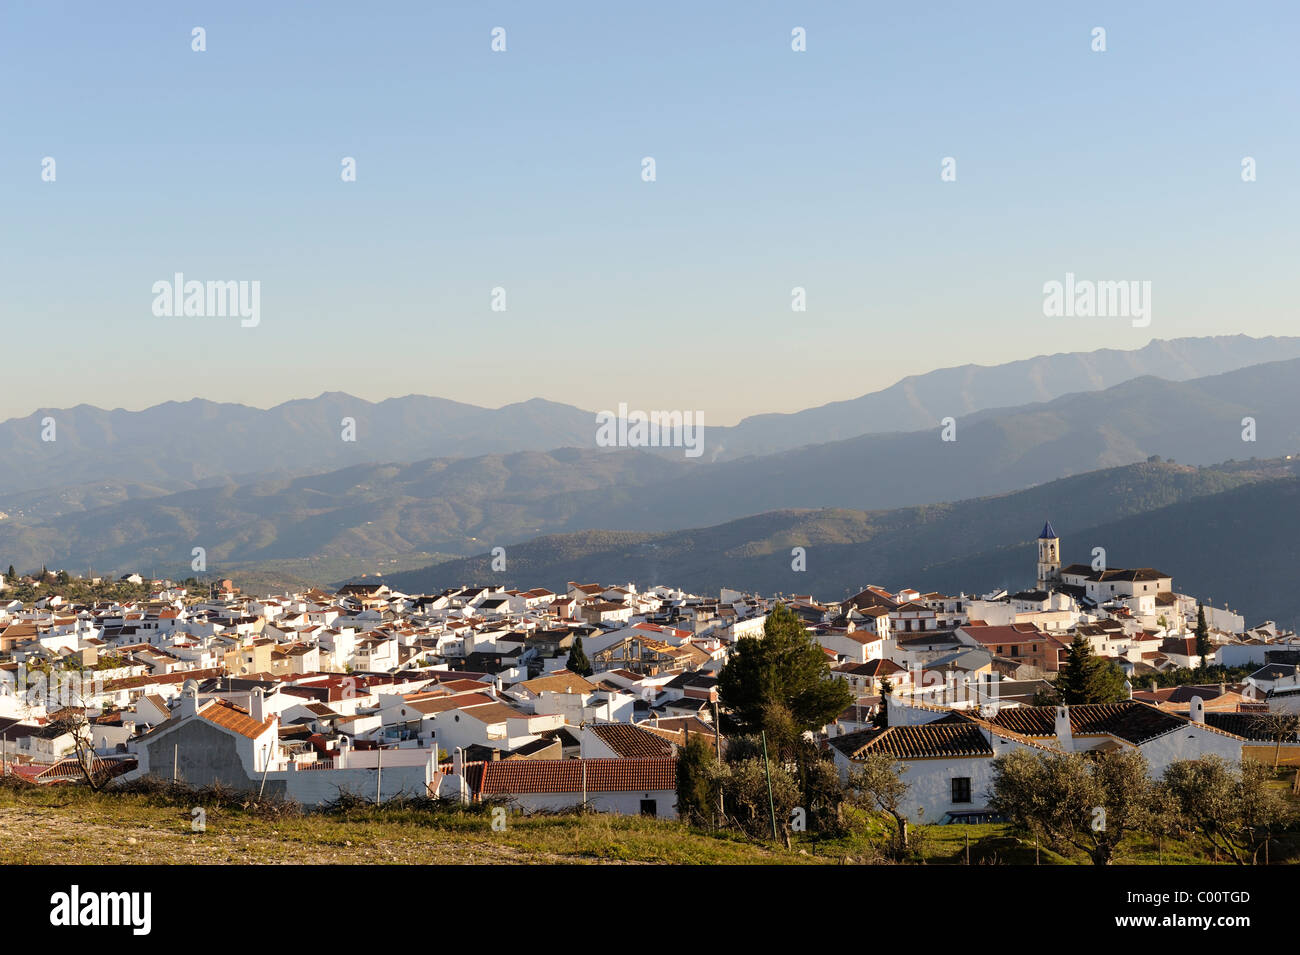 White village of Yunquera, Malaga Province Andalucia Spain - Stock Image